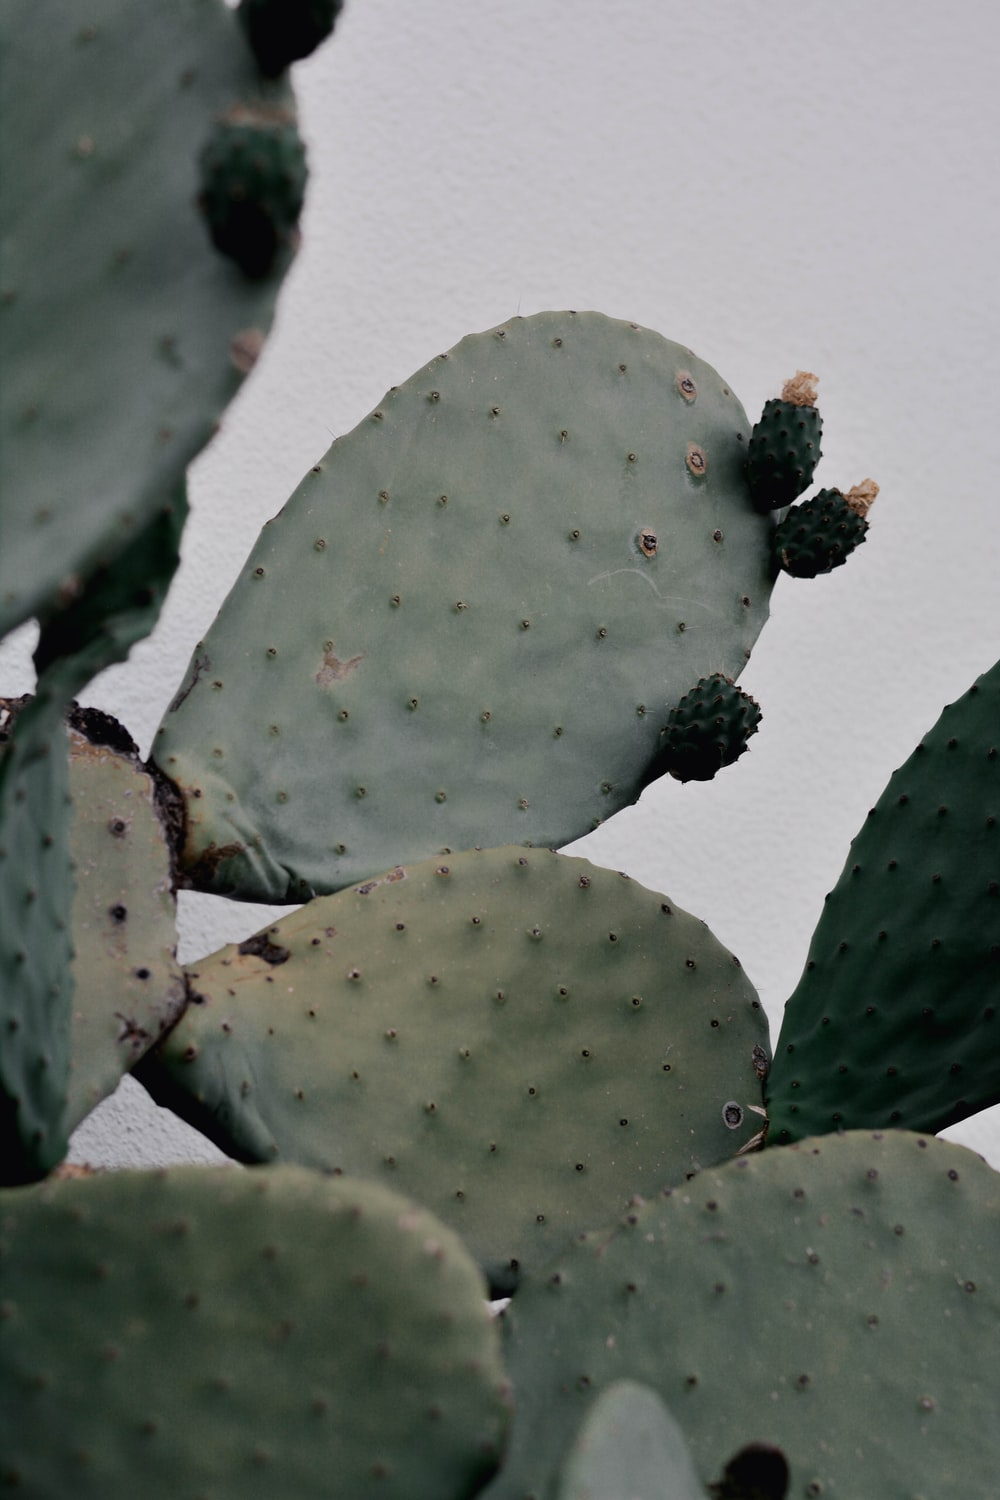 green cactus plant on white surface